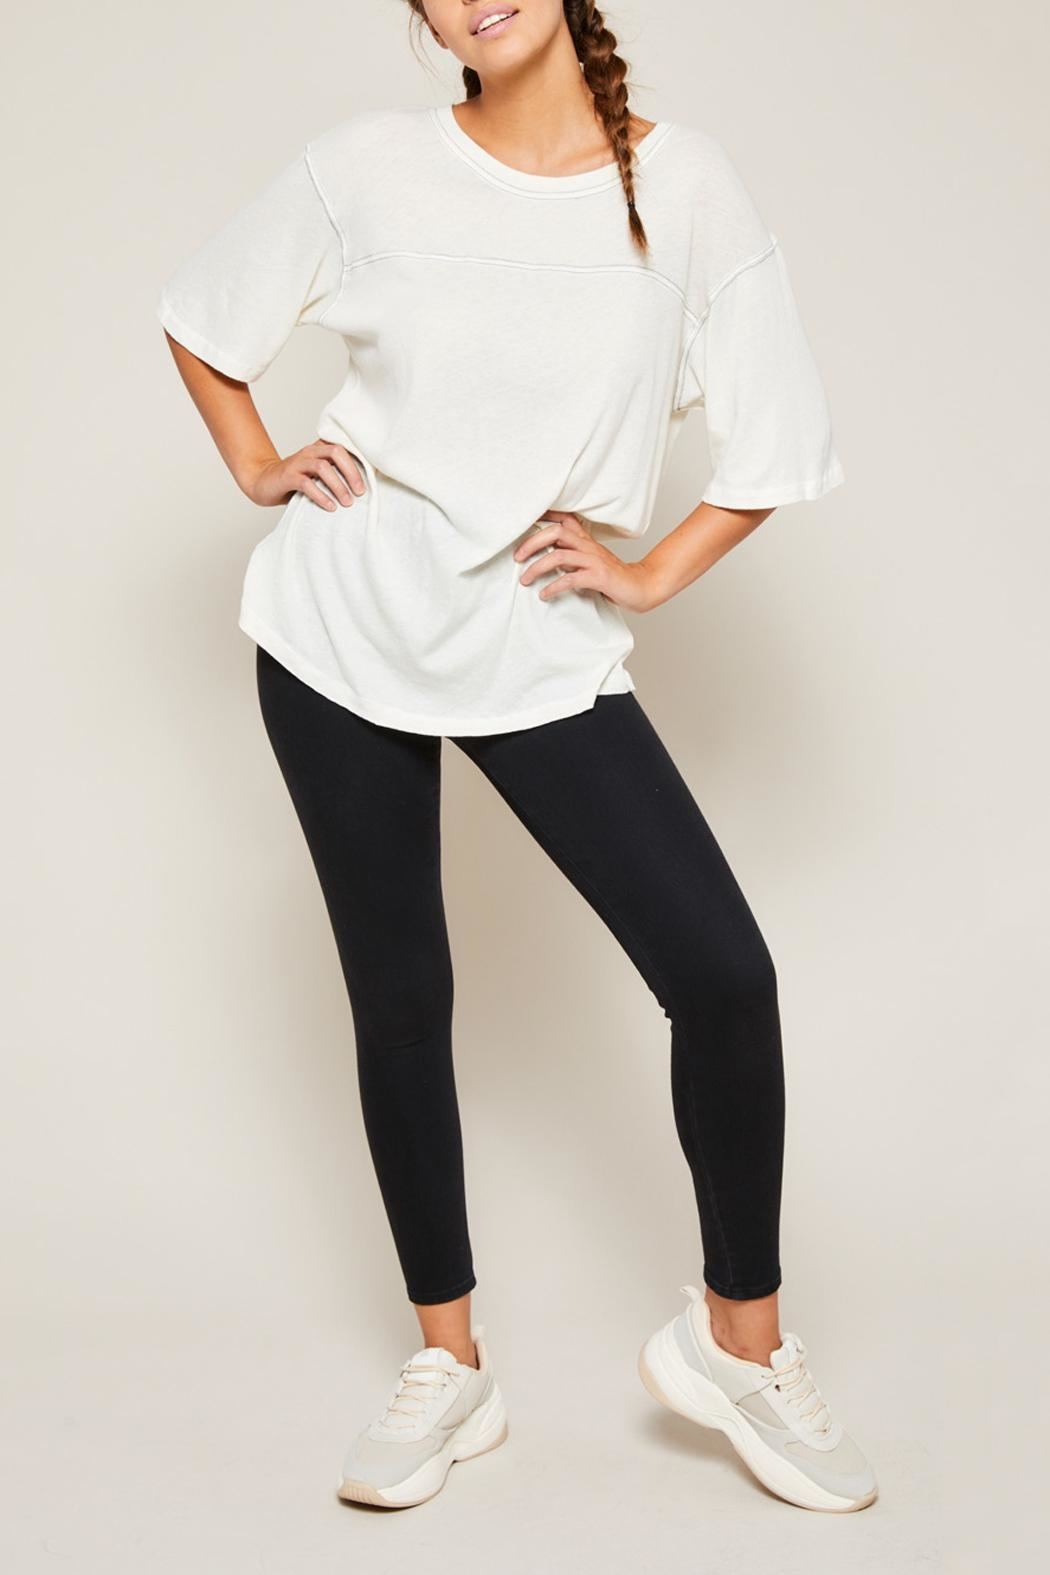 All Things Fabulous Horizon Jersey Tee - Side Cropped Image